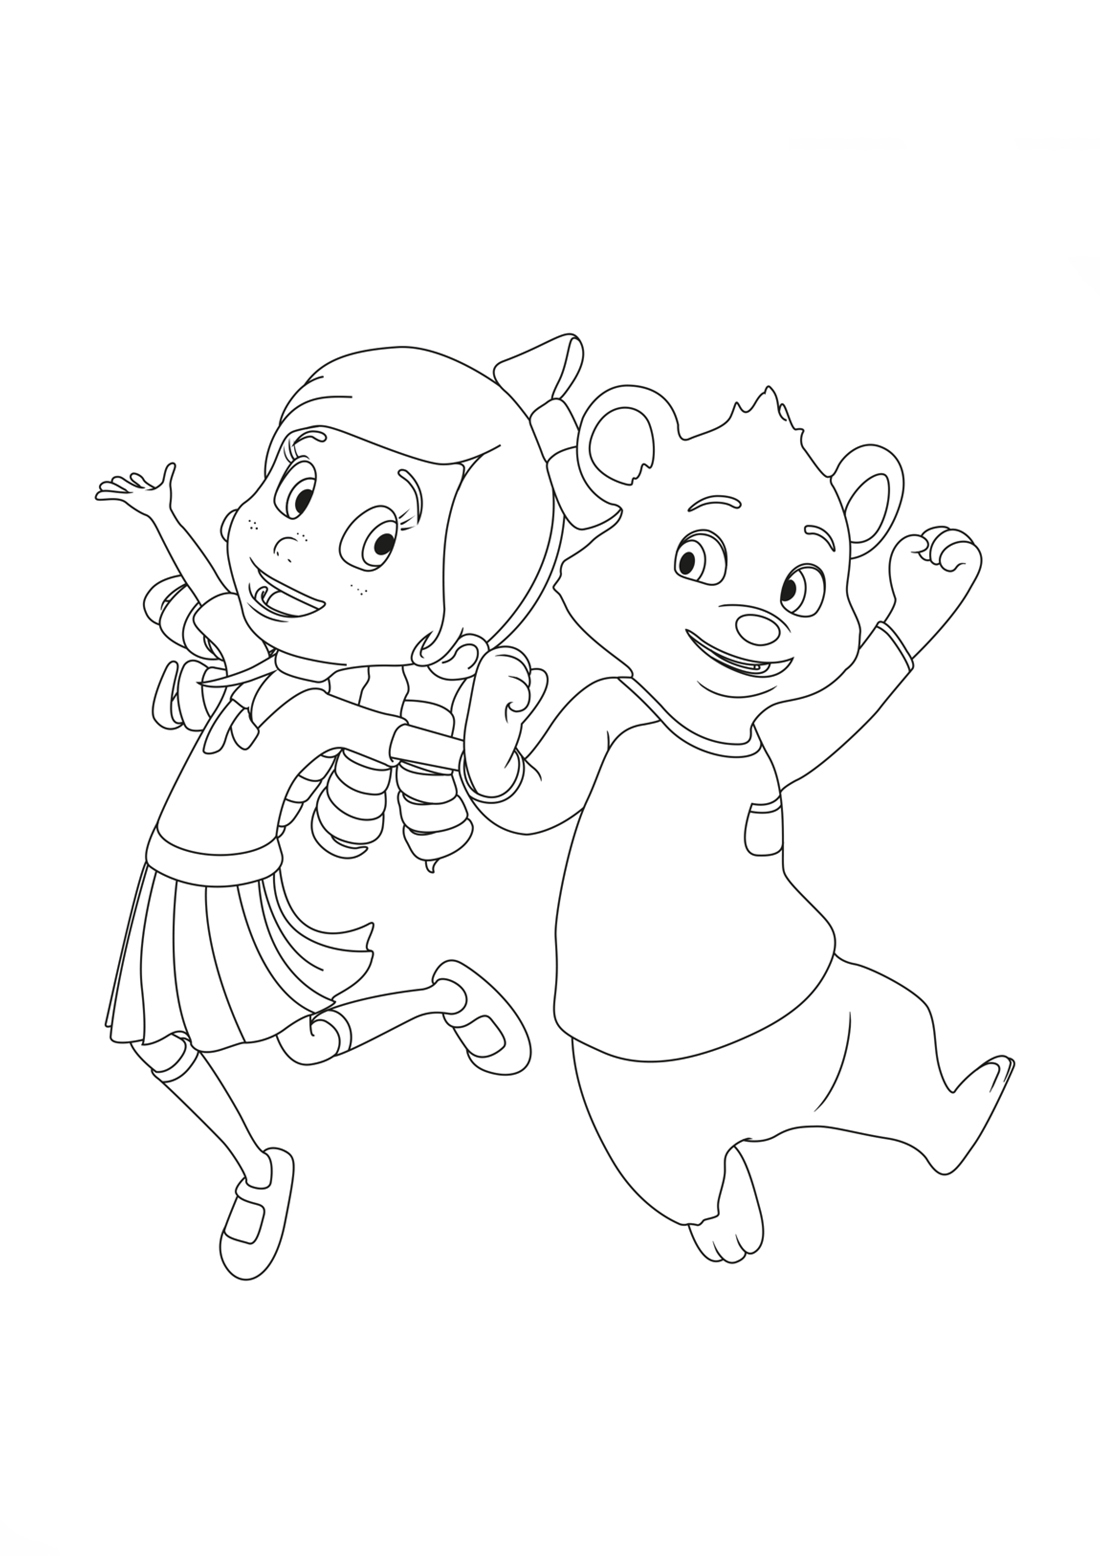 24 Goldie and Bear Coloring Pages Selection FREE COLORING PAGES